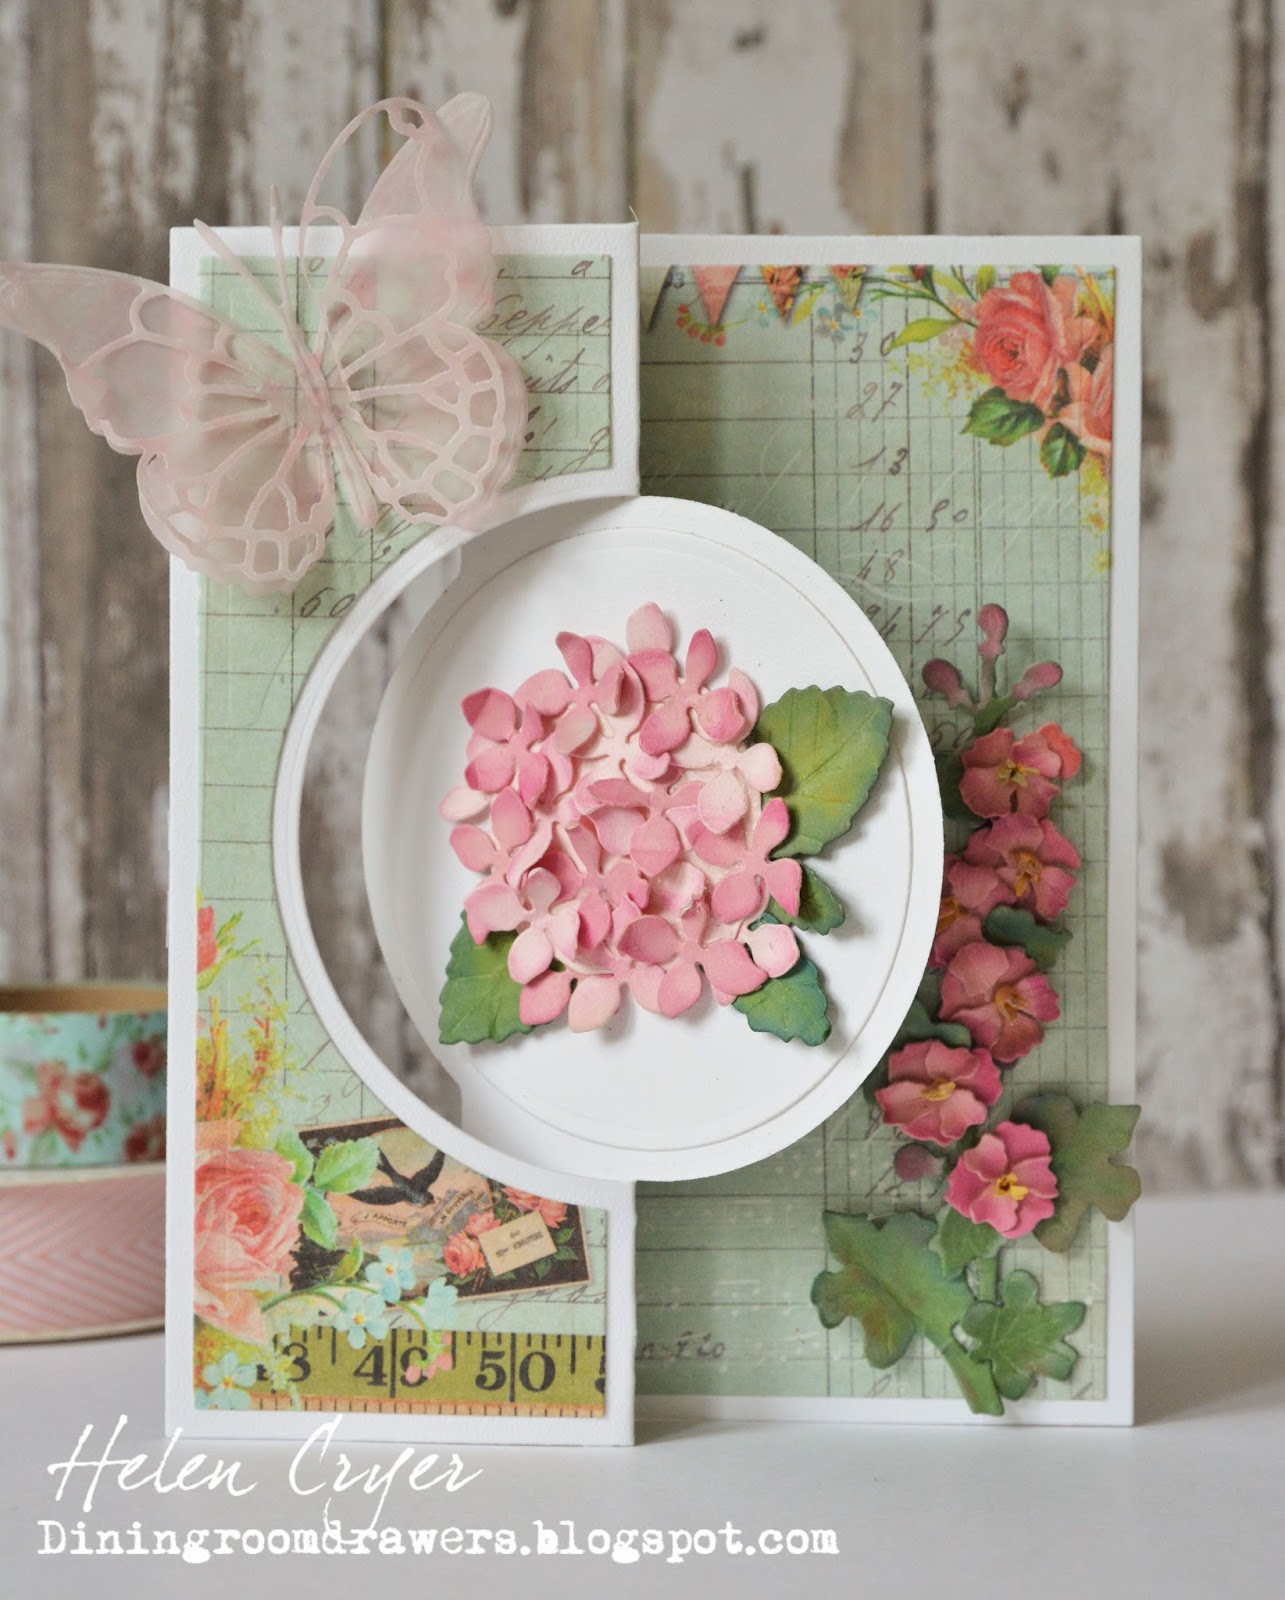 The Dining Room Drawers Sizzix Flip Its Elizabeth Craft Designs